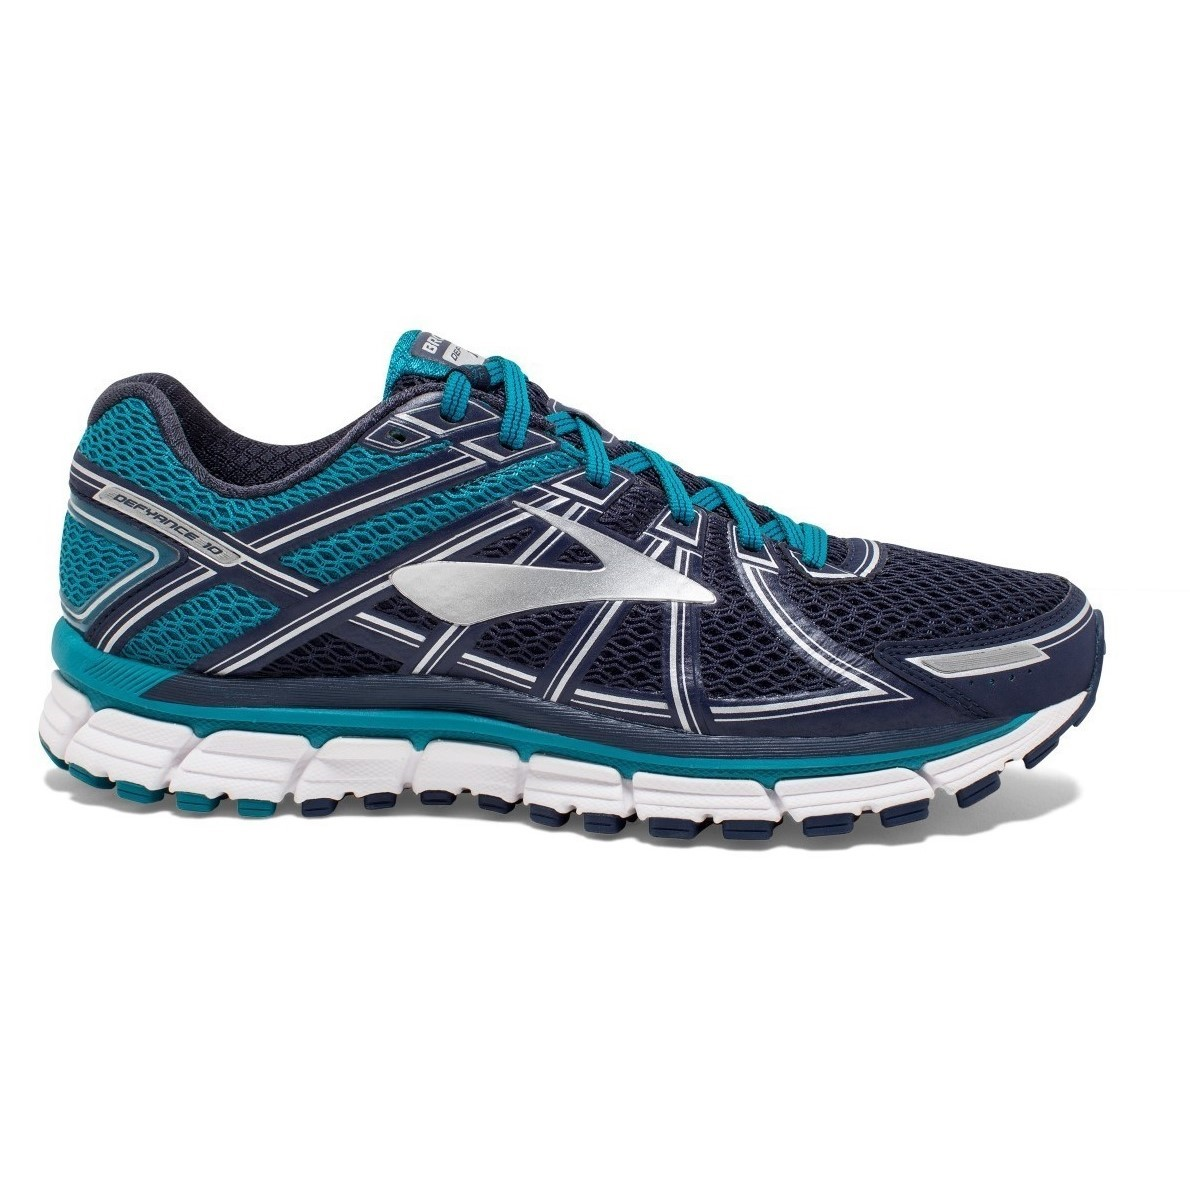 59ac863672e53 Brooks Defyance 10 - Mens Running Shoes - Tahitian Navy White ...